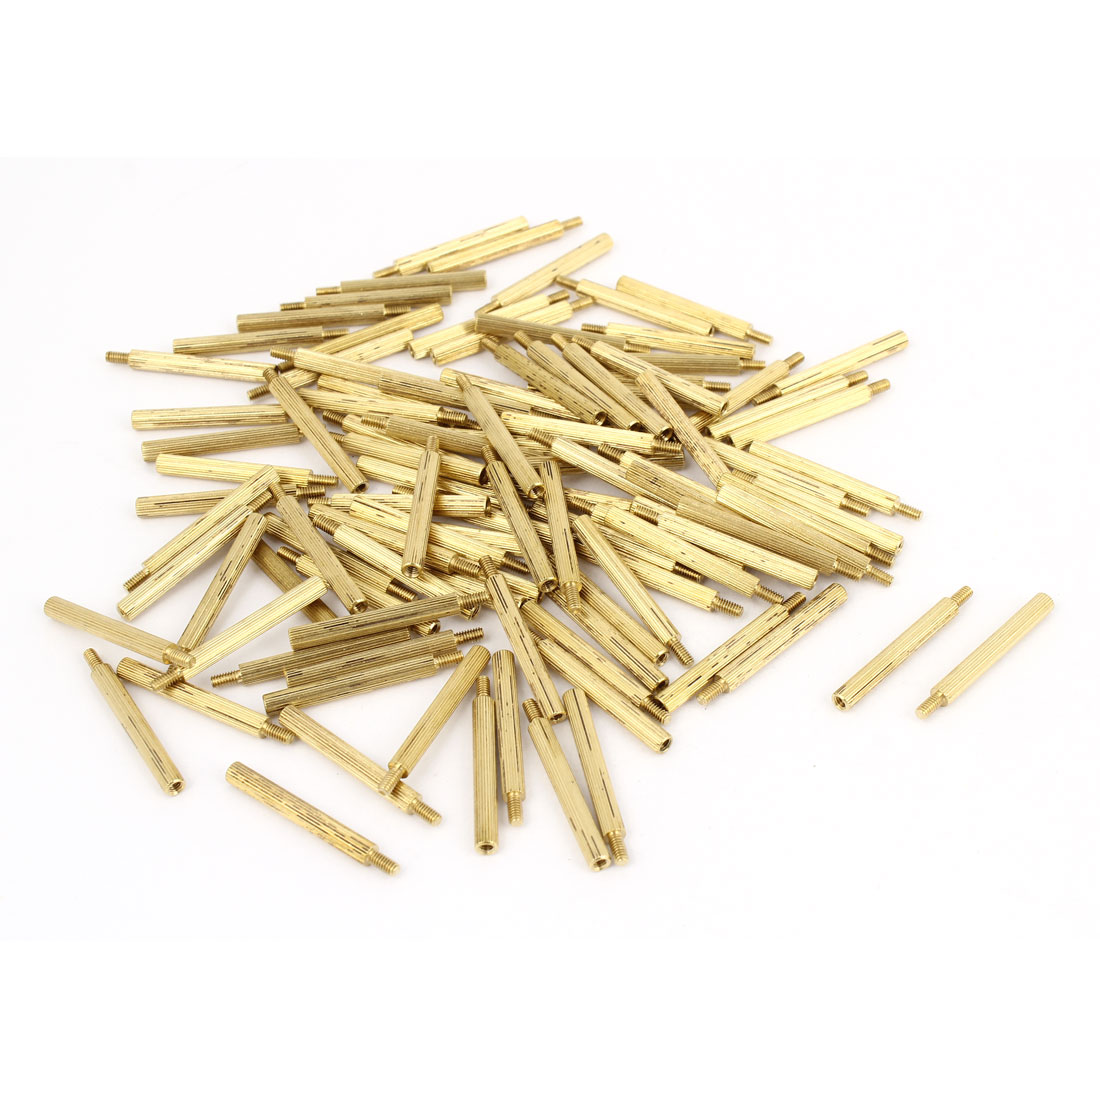 100Pcs Male to Female Thread PCB Board Knurled Brass Pillars Standoff M2x24mm